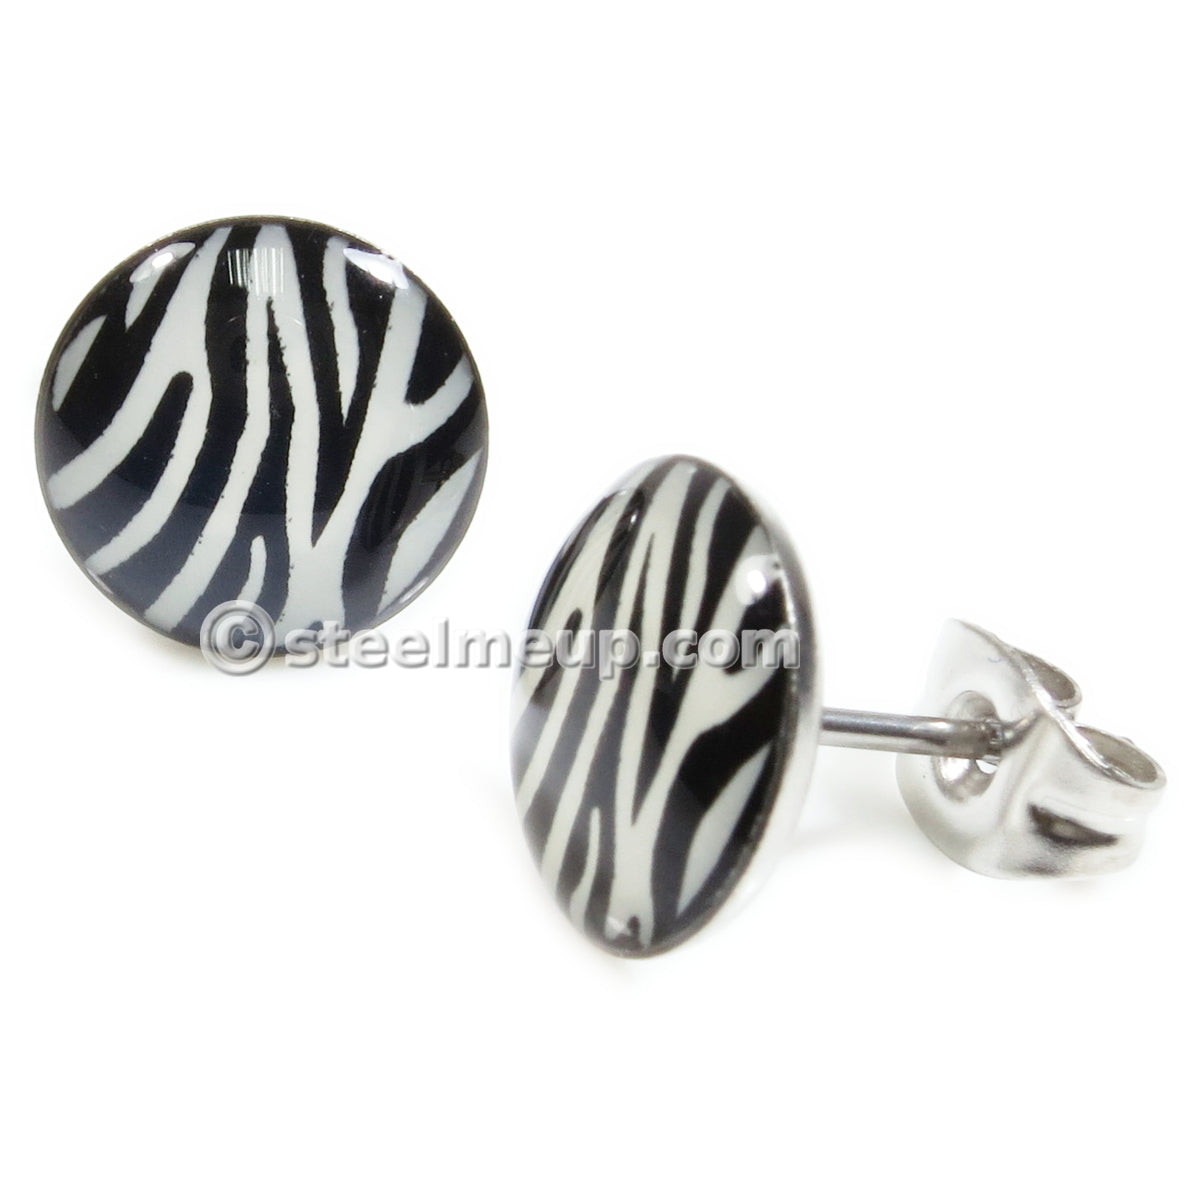 Pair Stainless Steel Round Zebra Mark Post Stud Earrings 9mm